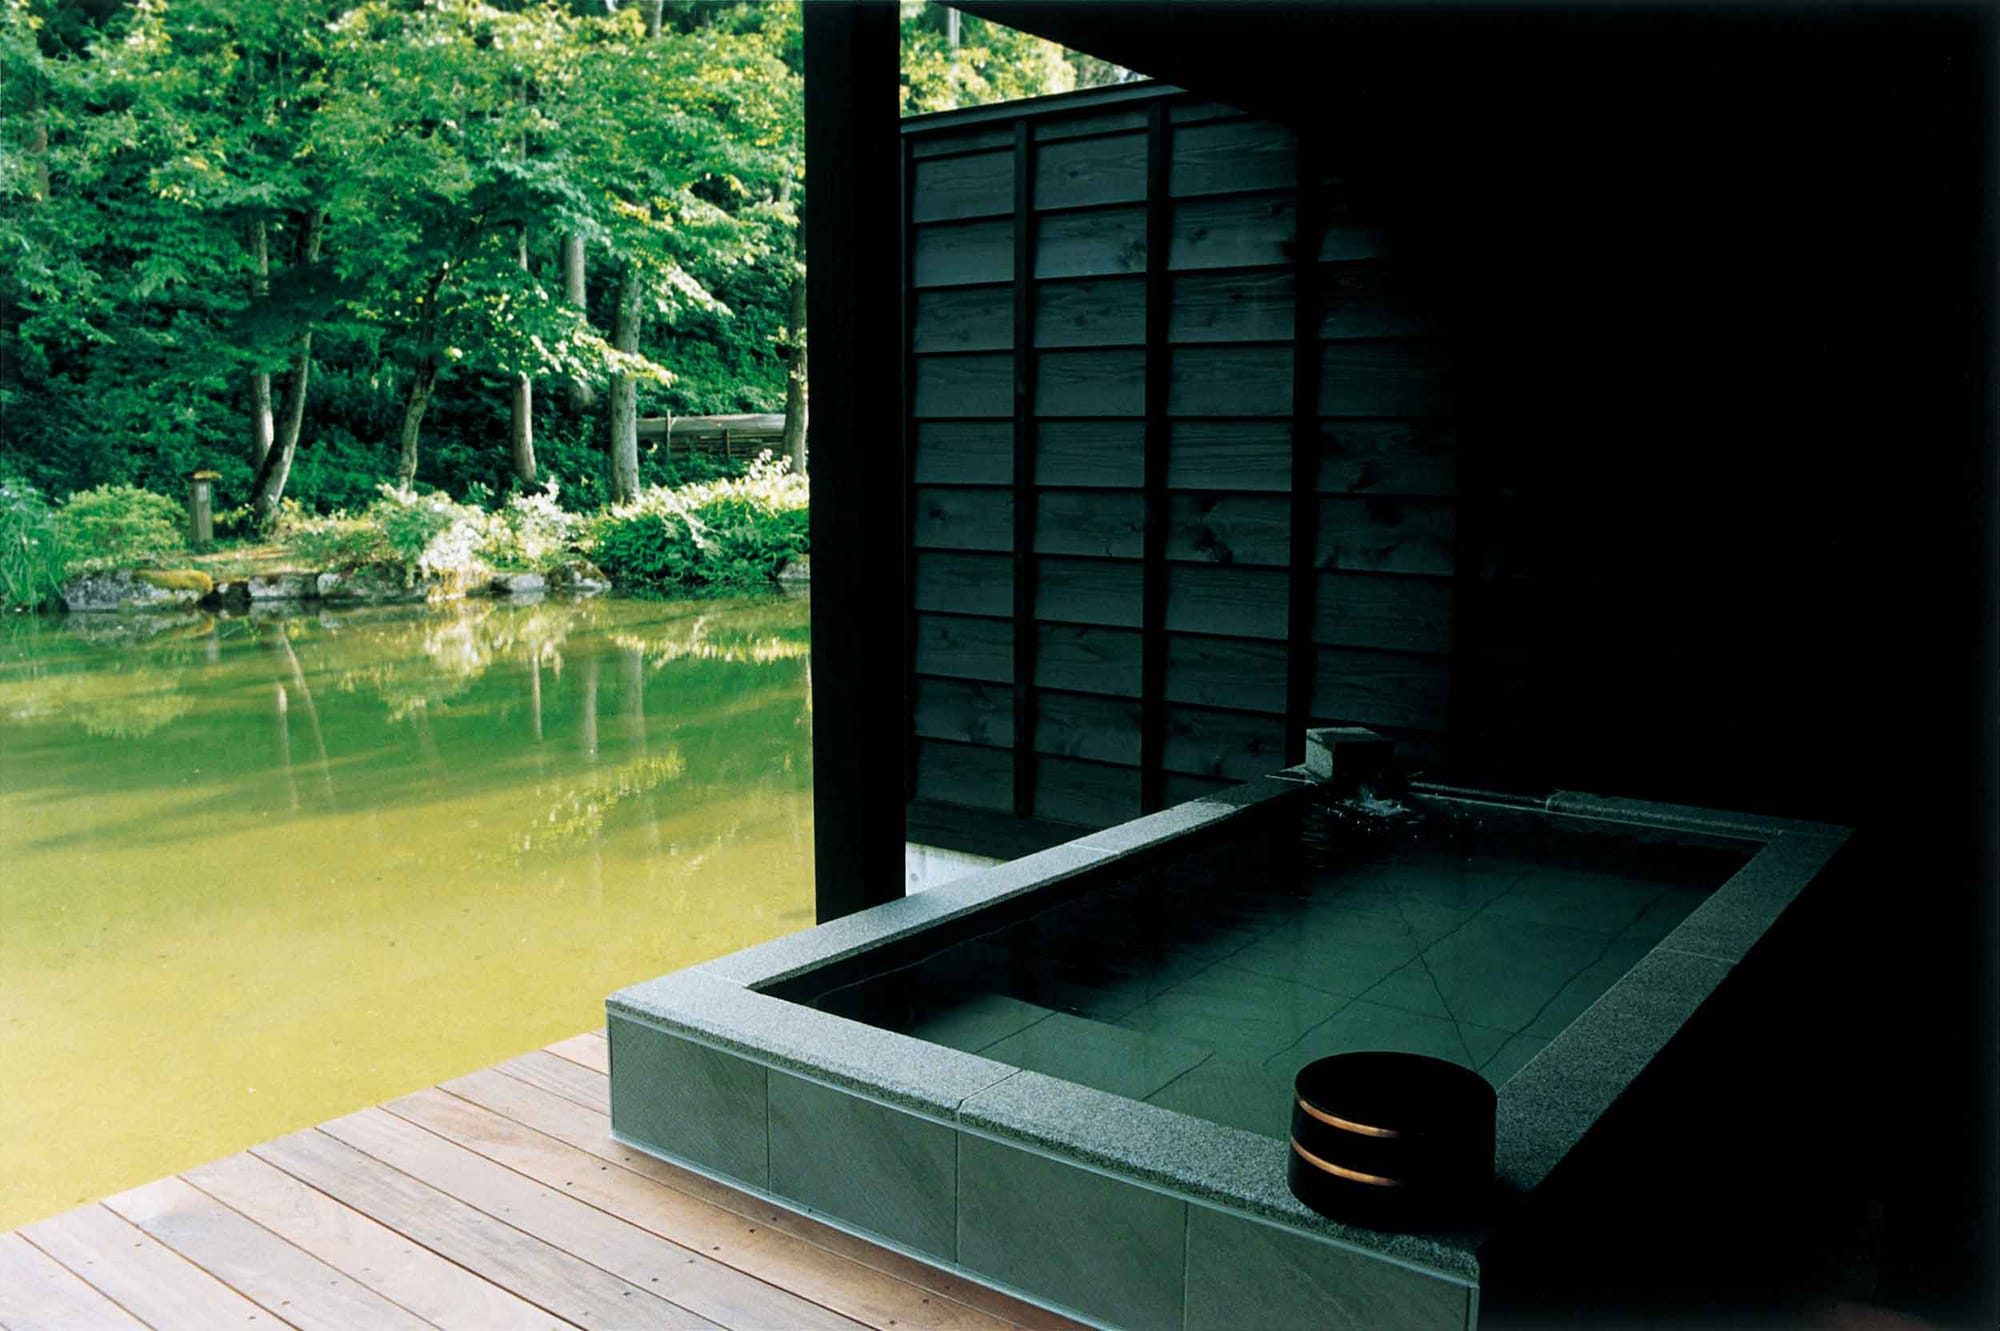 The terrace of the villa suite is equipped with an open-air onsen bath. The onsen flows directly from the Muikamachi onsen for 24 hours so that guests can lay back and relax anytime they wish.